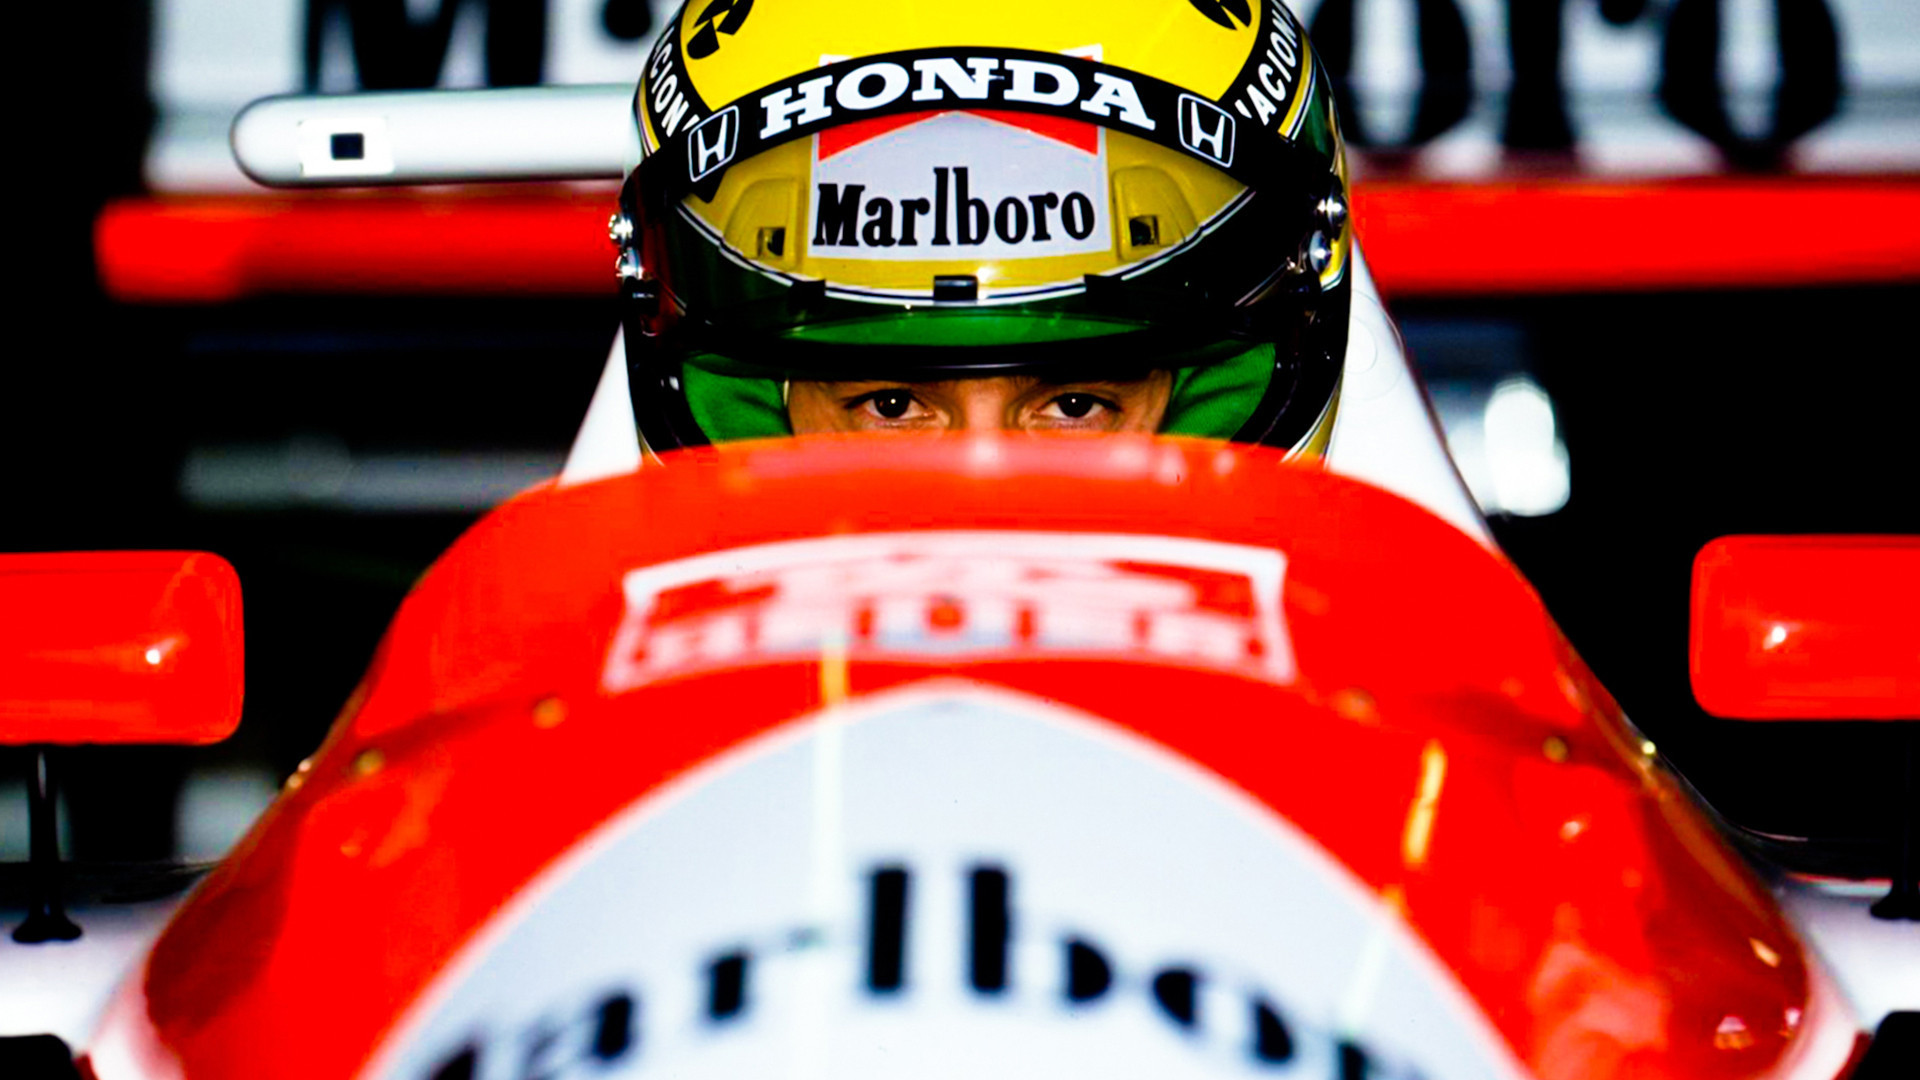 Ayrton-Senna-wallpaper-wp3602875